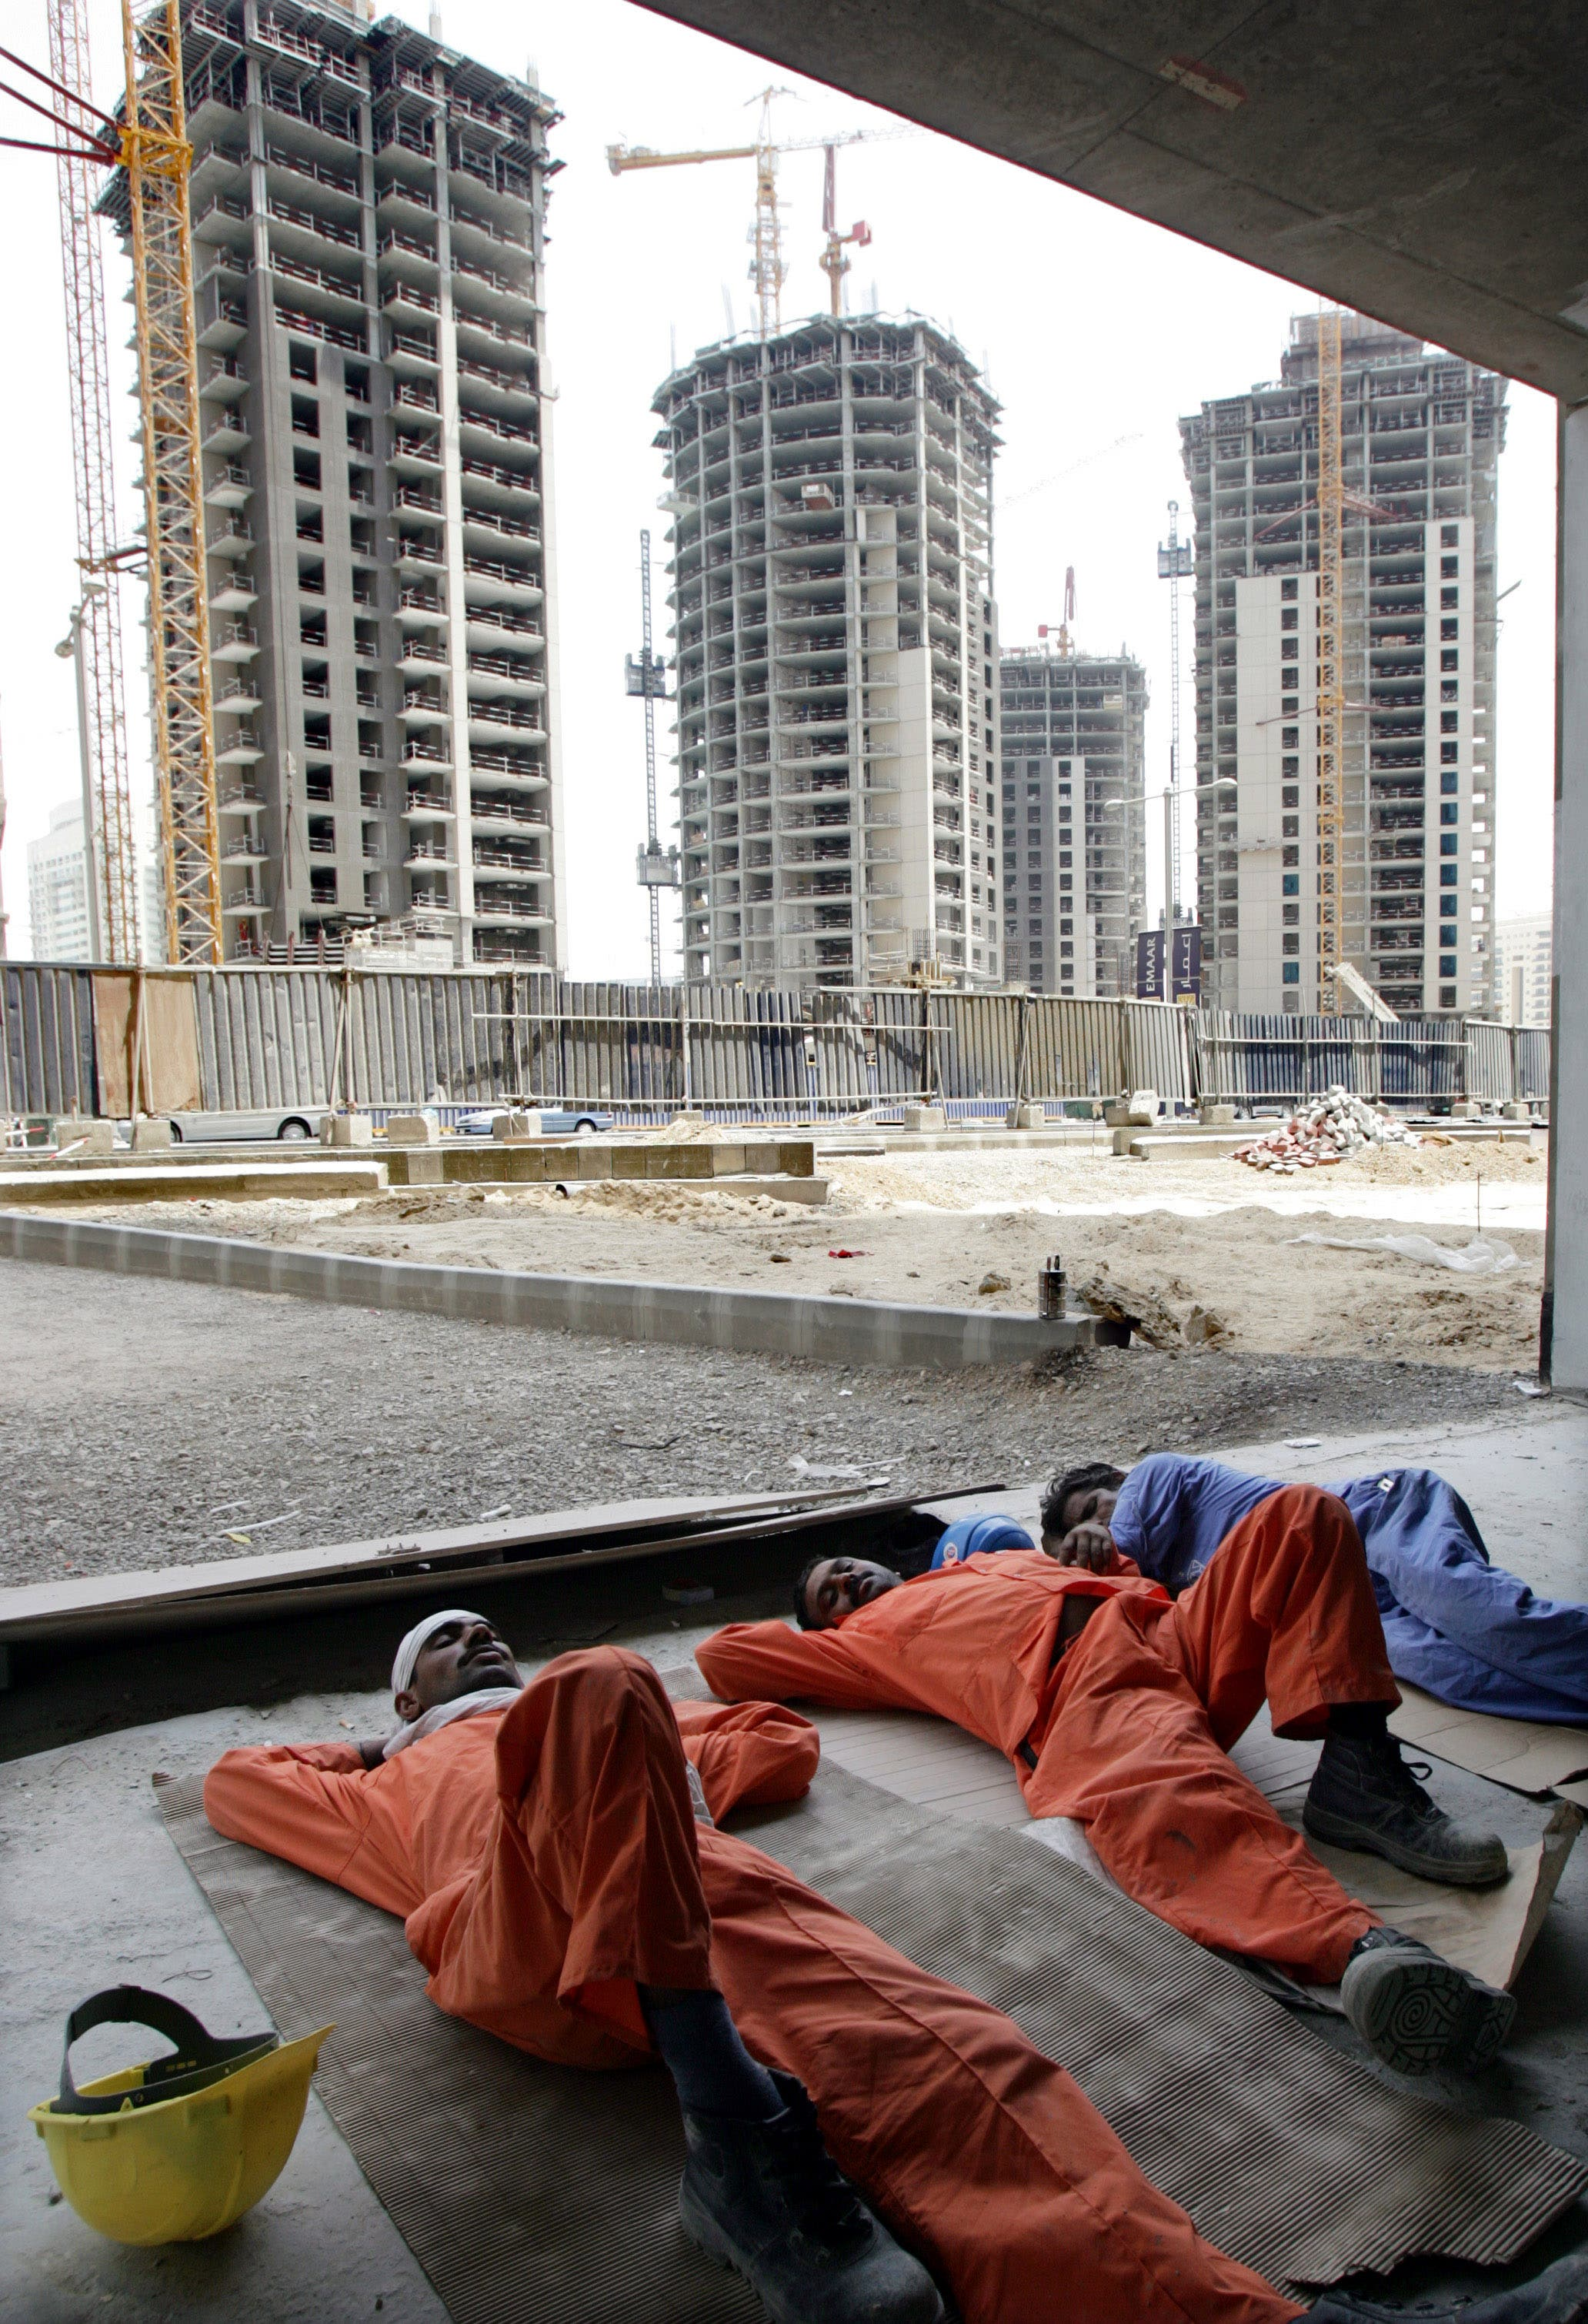 Workers take a nap on a hot afternoon at a construction site in Dubai. (File photo: Reuters)